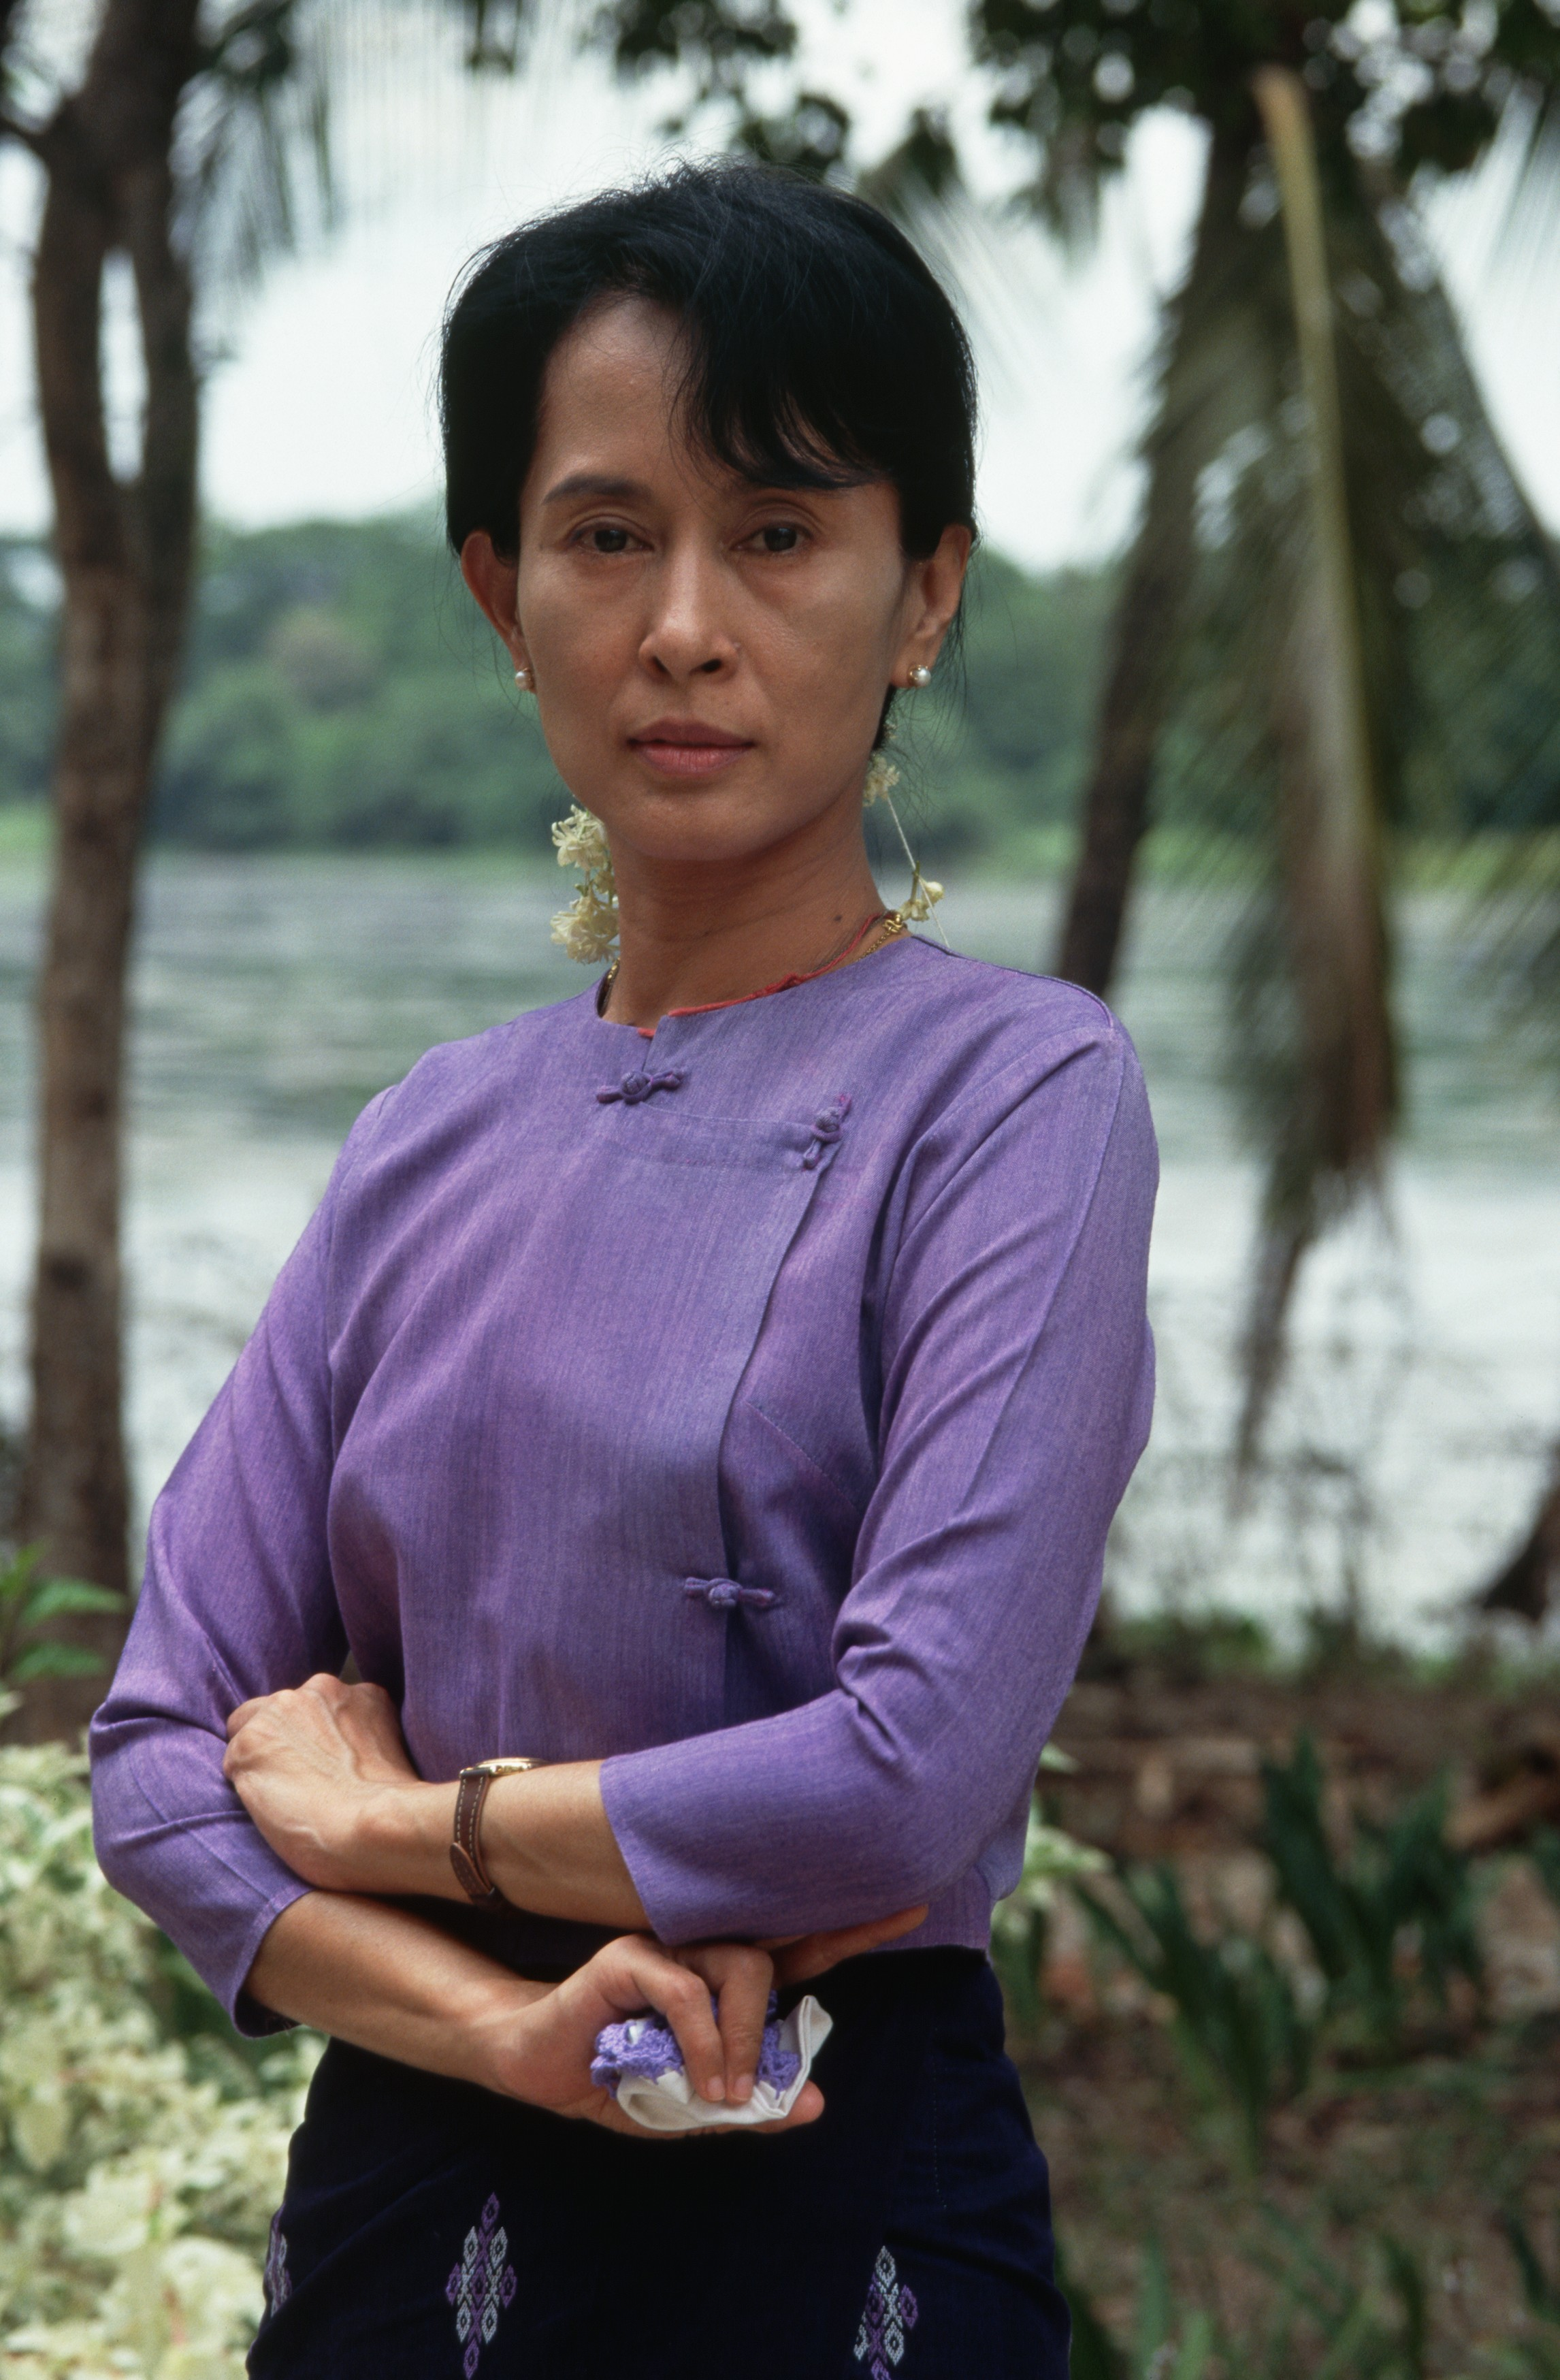 <strong>Aung San Suu Kyi, Myanmar</strong>                                   Nobel Peace laureate Aung San Suu has been the foremost leader in the effort to democratize the Southeast Asian nation as well as a courageous advocate for human rights and peaceful revolution. She spent 15 years under house arrest when the government refused to cede power to her after her party was elected.